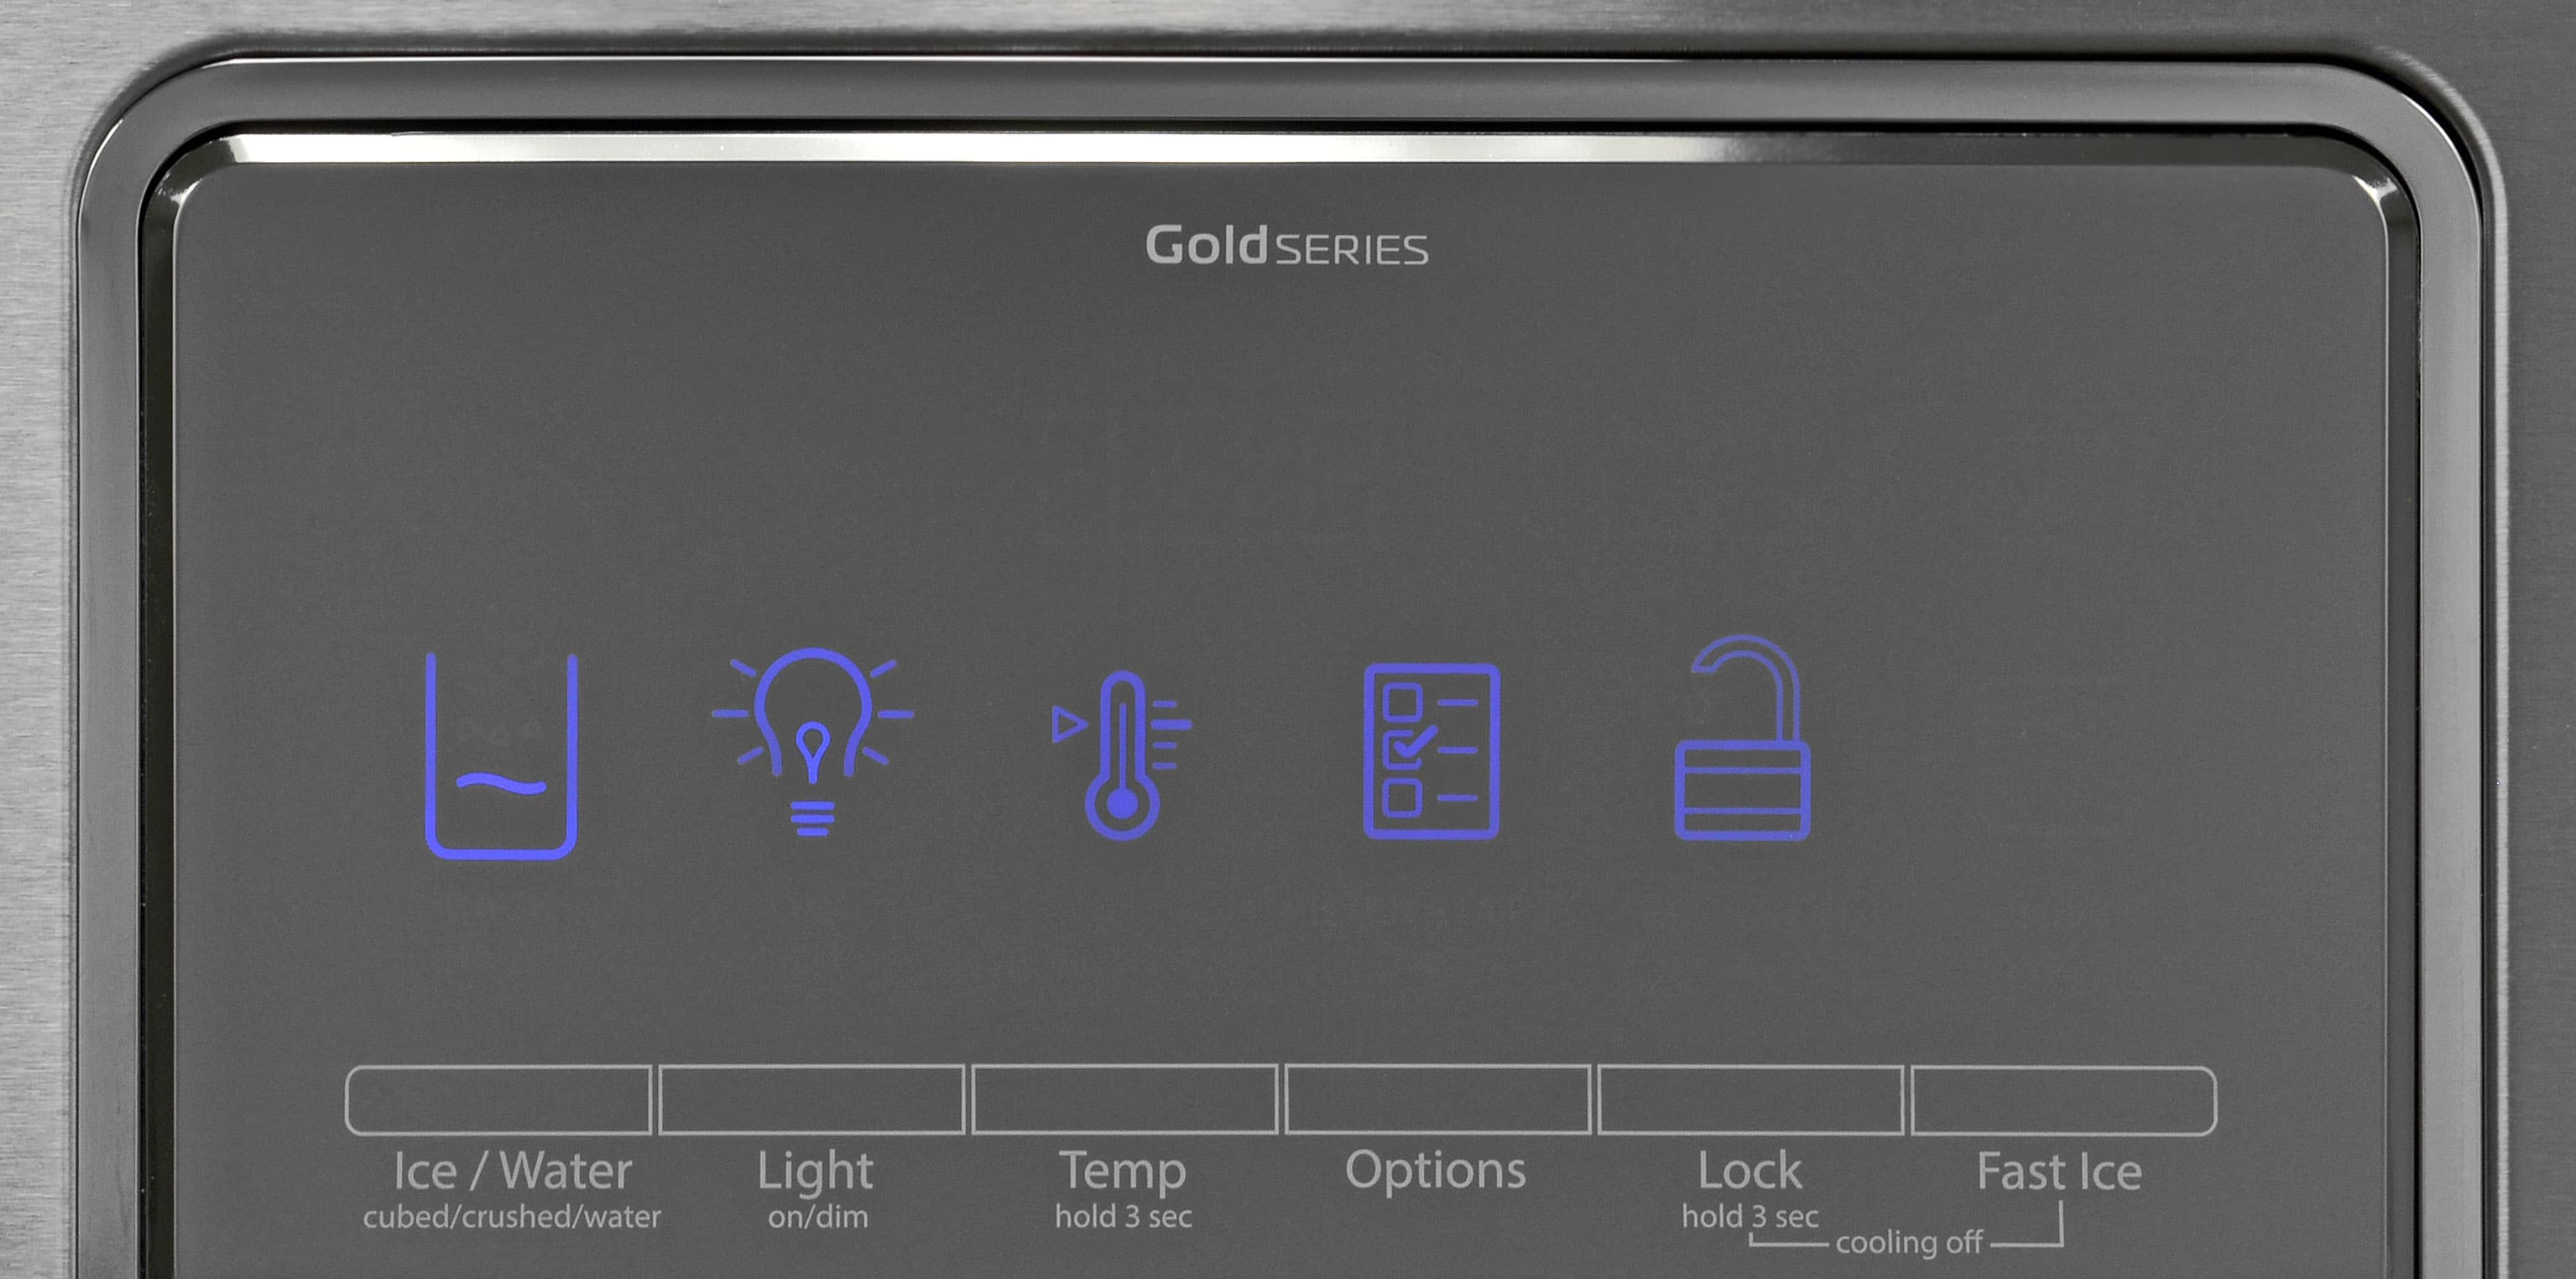 The Whirlpool WRF757SDEM's pale, reflective control panel is responsive and blends in well with the stainless finish.